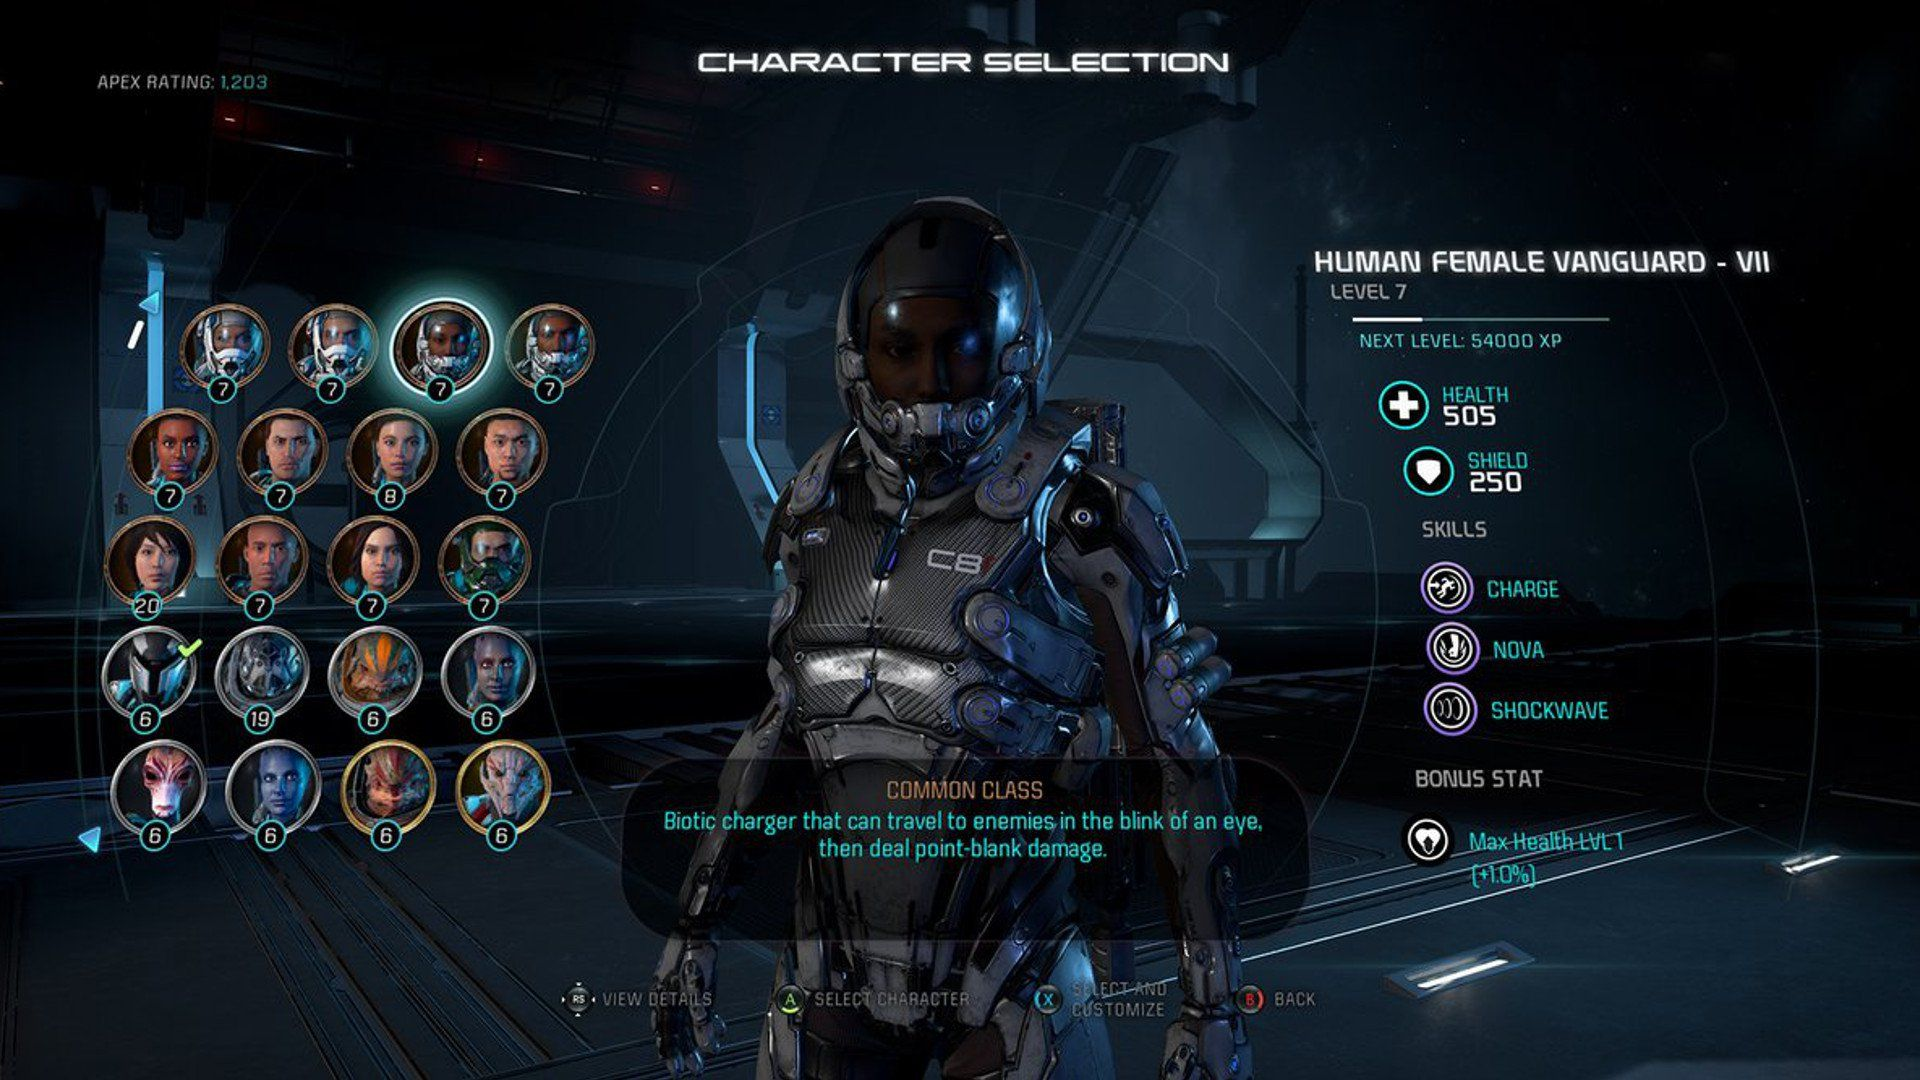 BioWare Explains Multiplayer Tie-in to Mass Effect: Andromeda - http://techraptor.net/content/bioware-explains-multiplayer-tie-mass-effect-andromeda | Gaming, Gaming News